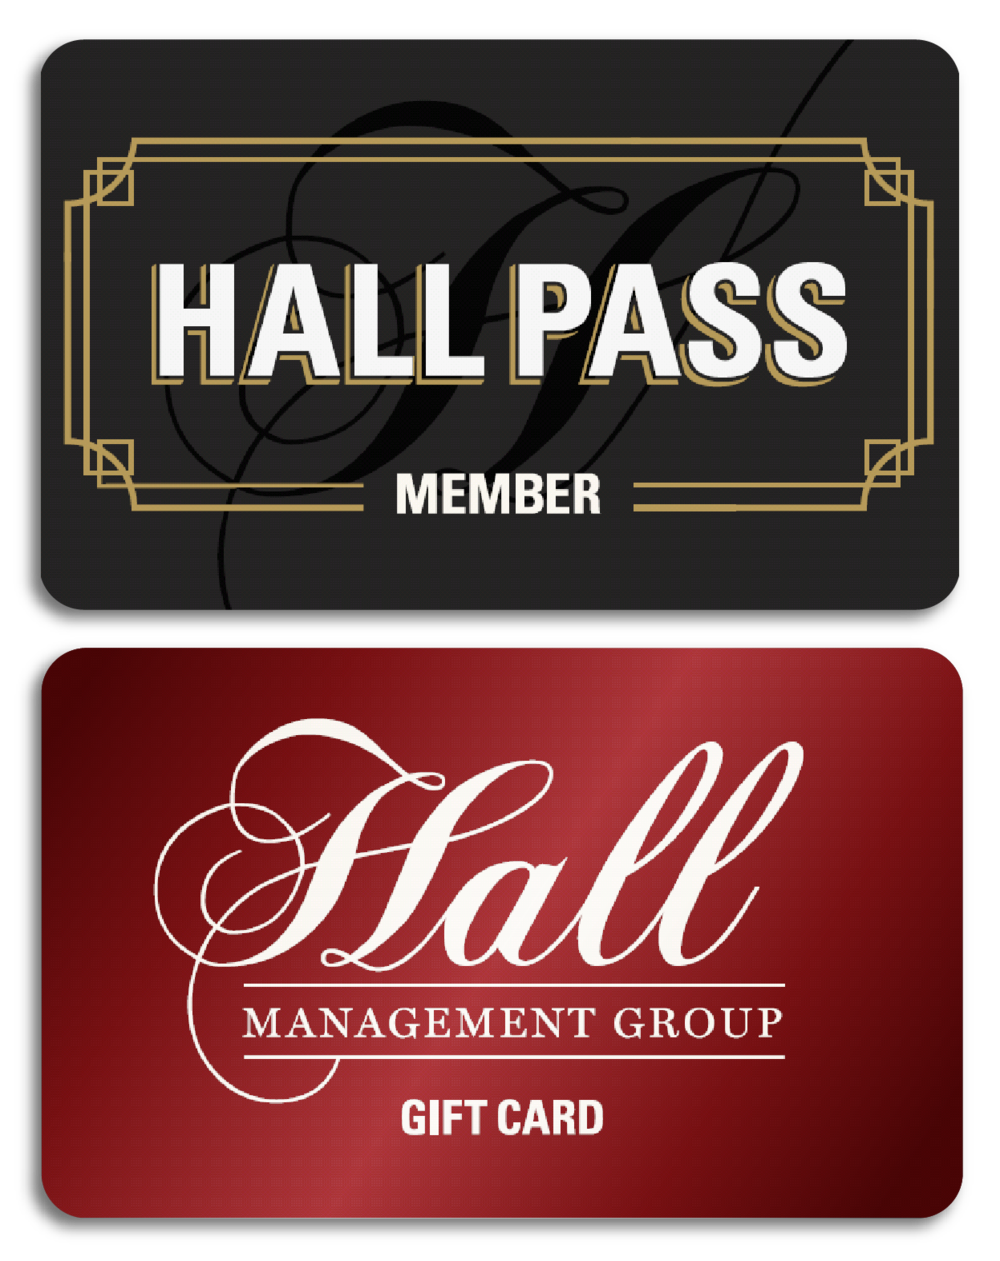 Hall Pass and gift Card